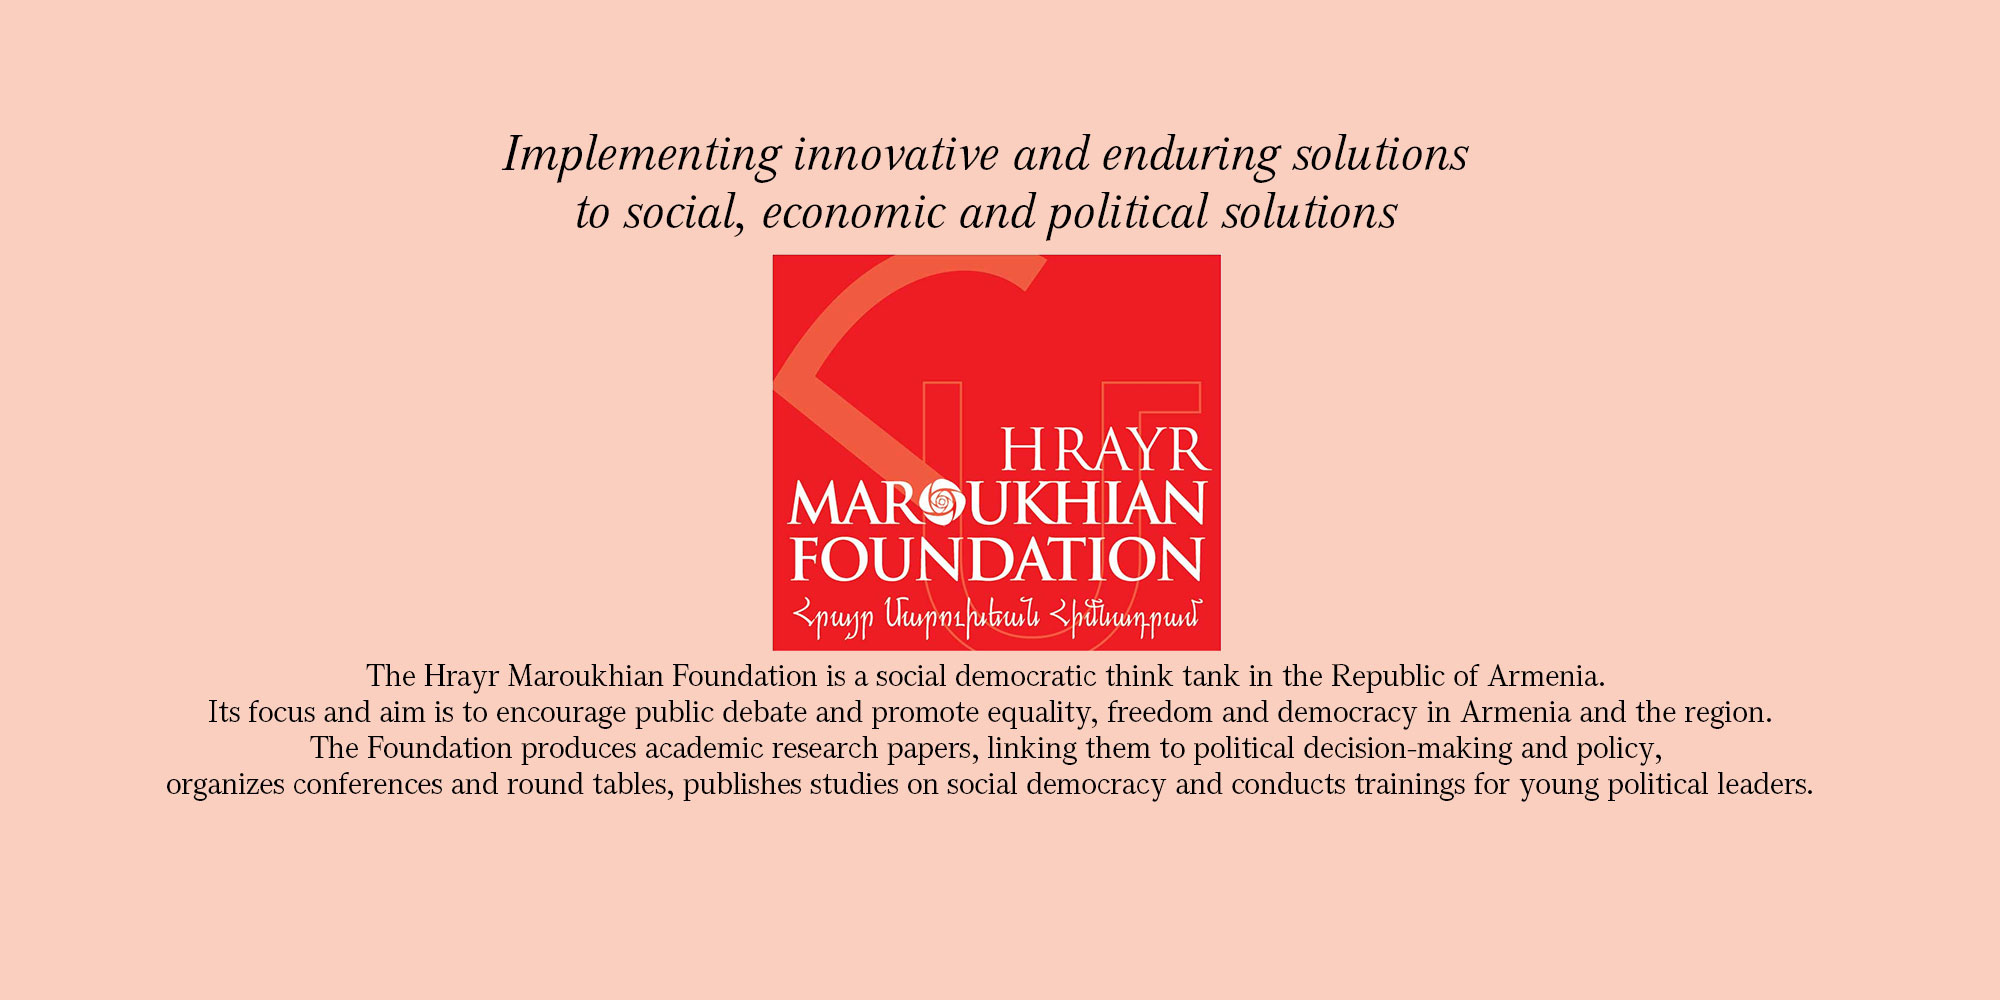 Hrayr Maroukhian Foundation